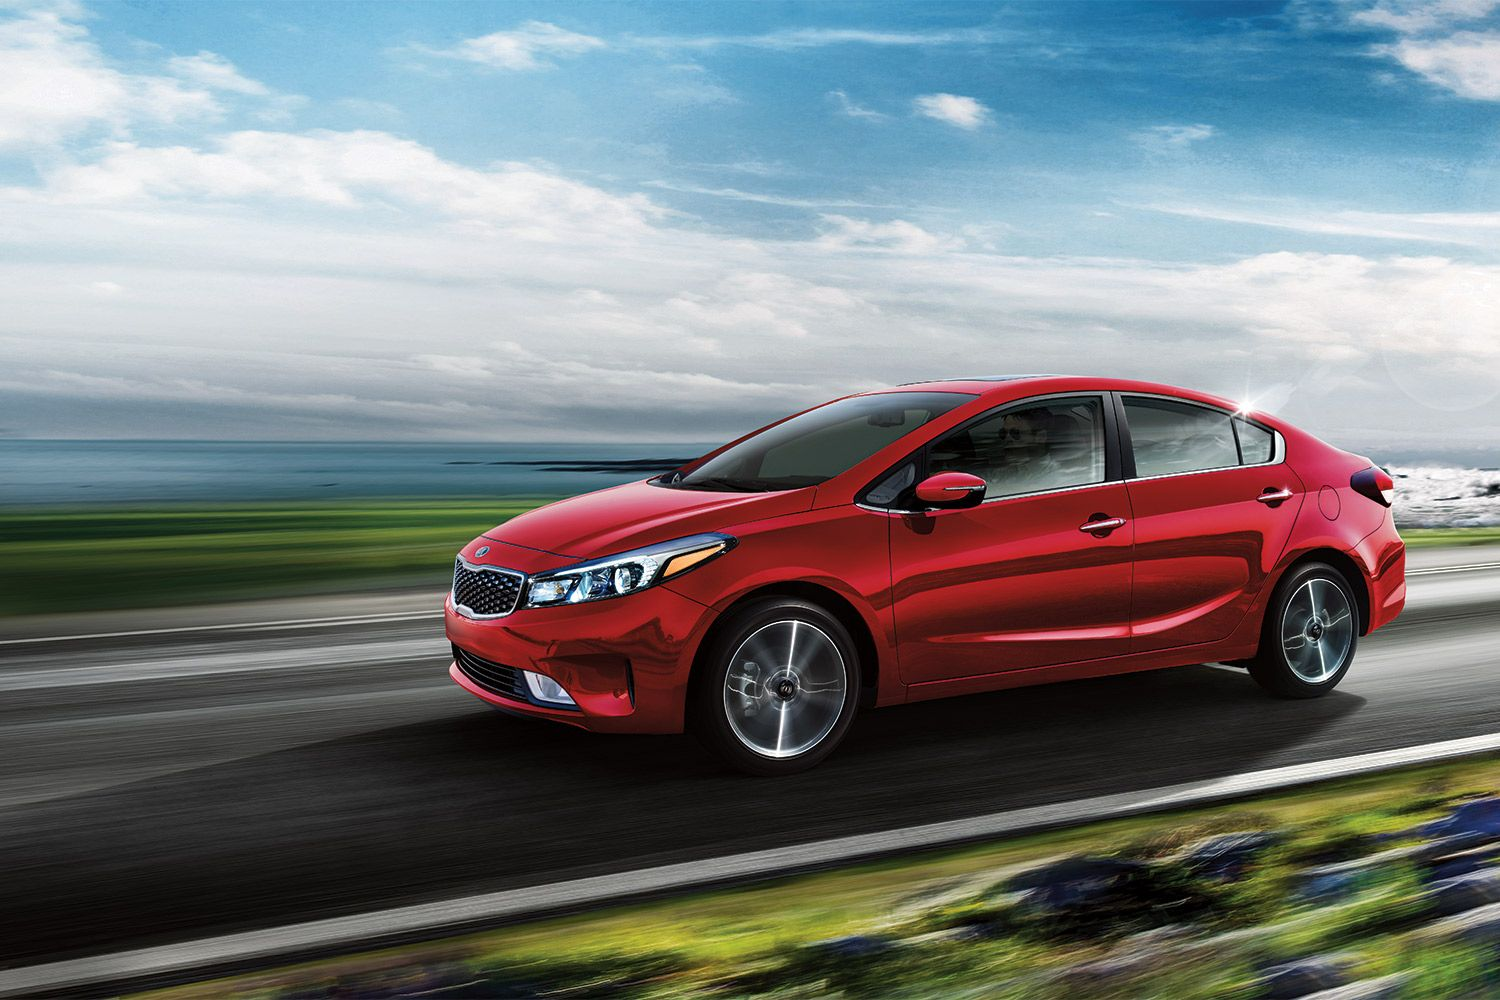 Kia Forte is compact sedan is perfect for your family